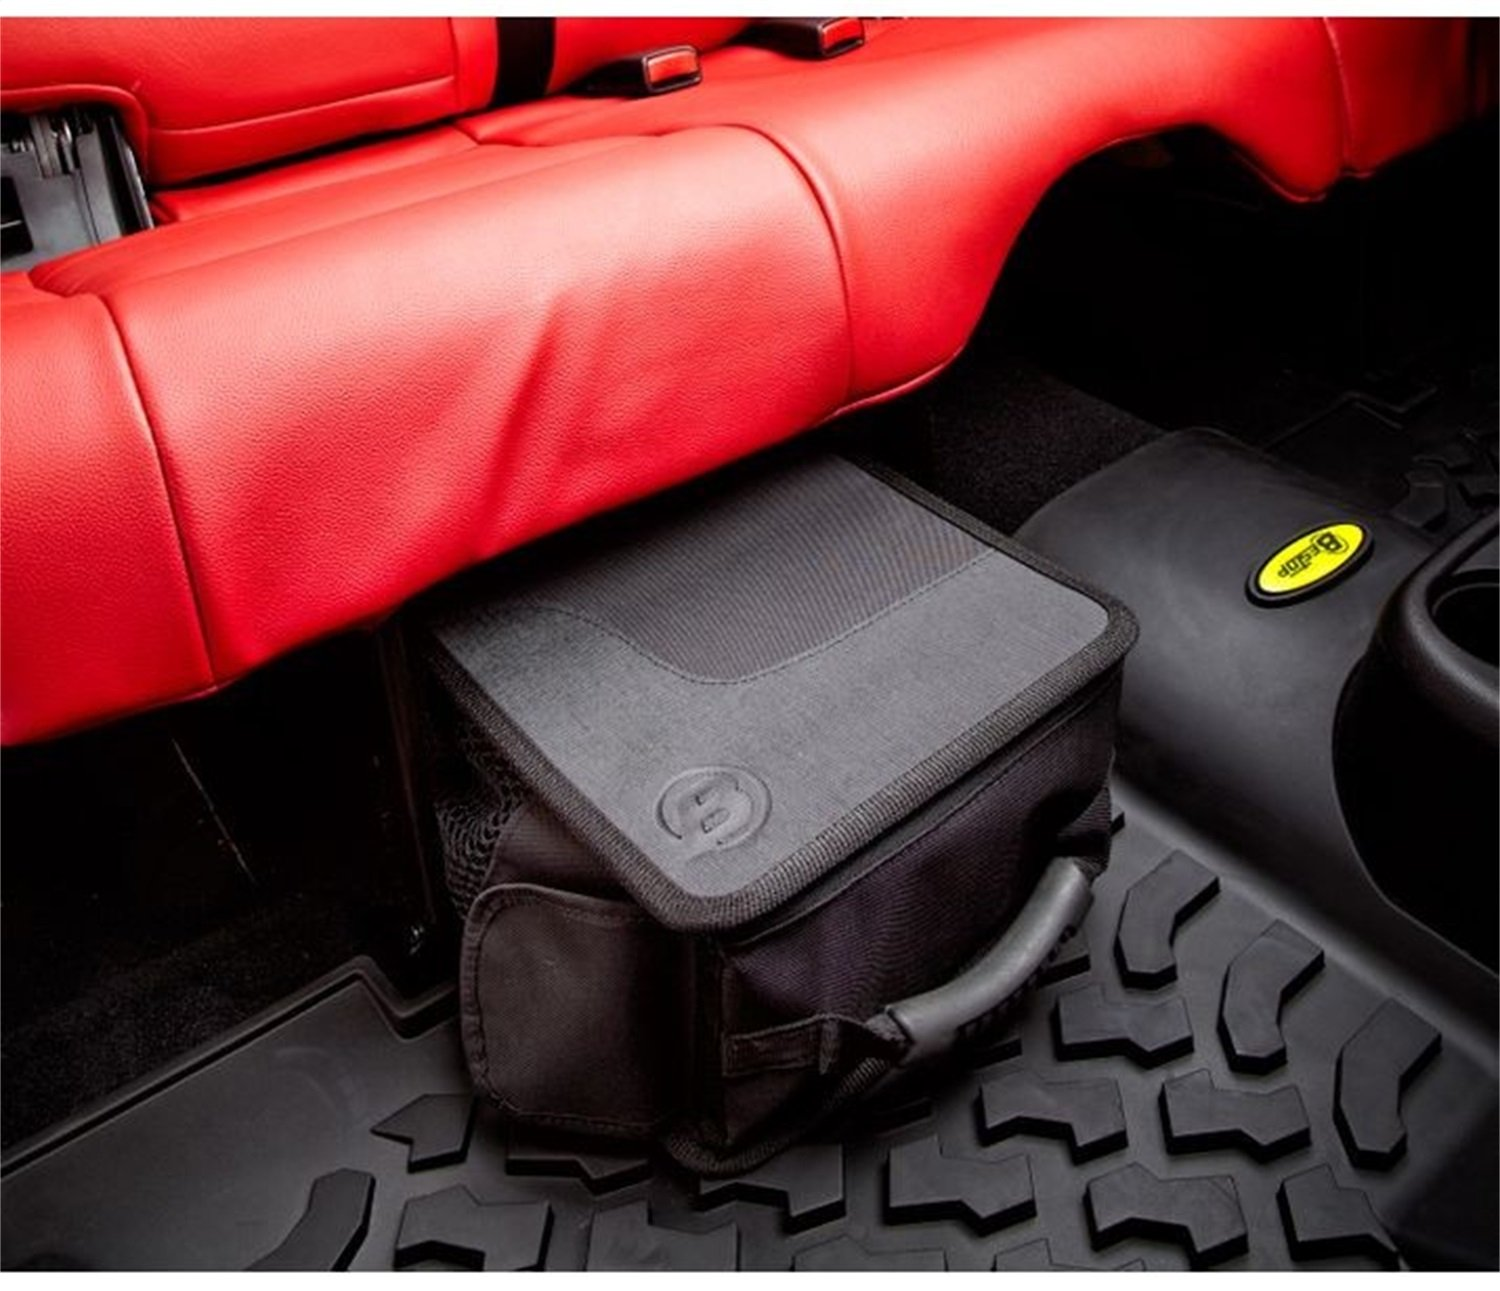 Bestop 54131-35 RoughRider Black Diamond Under Seat Organizer for 2007-2018 Wrangler JK